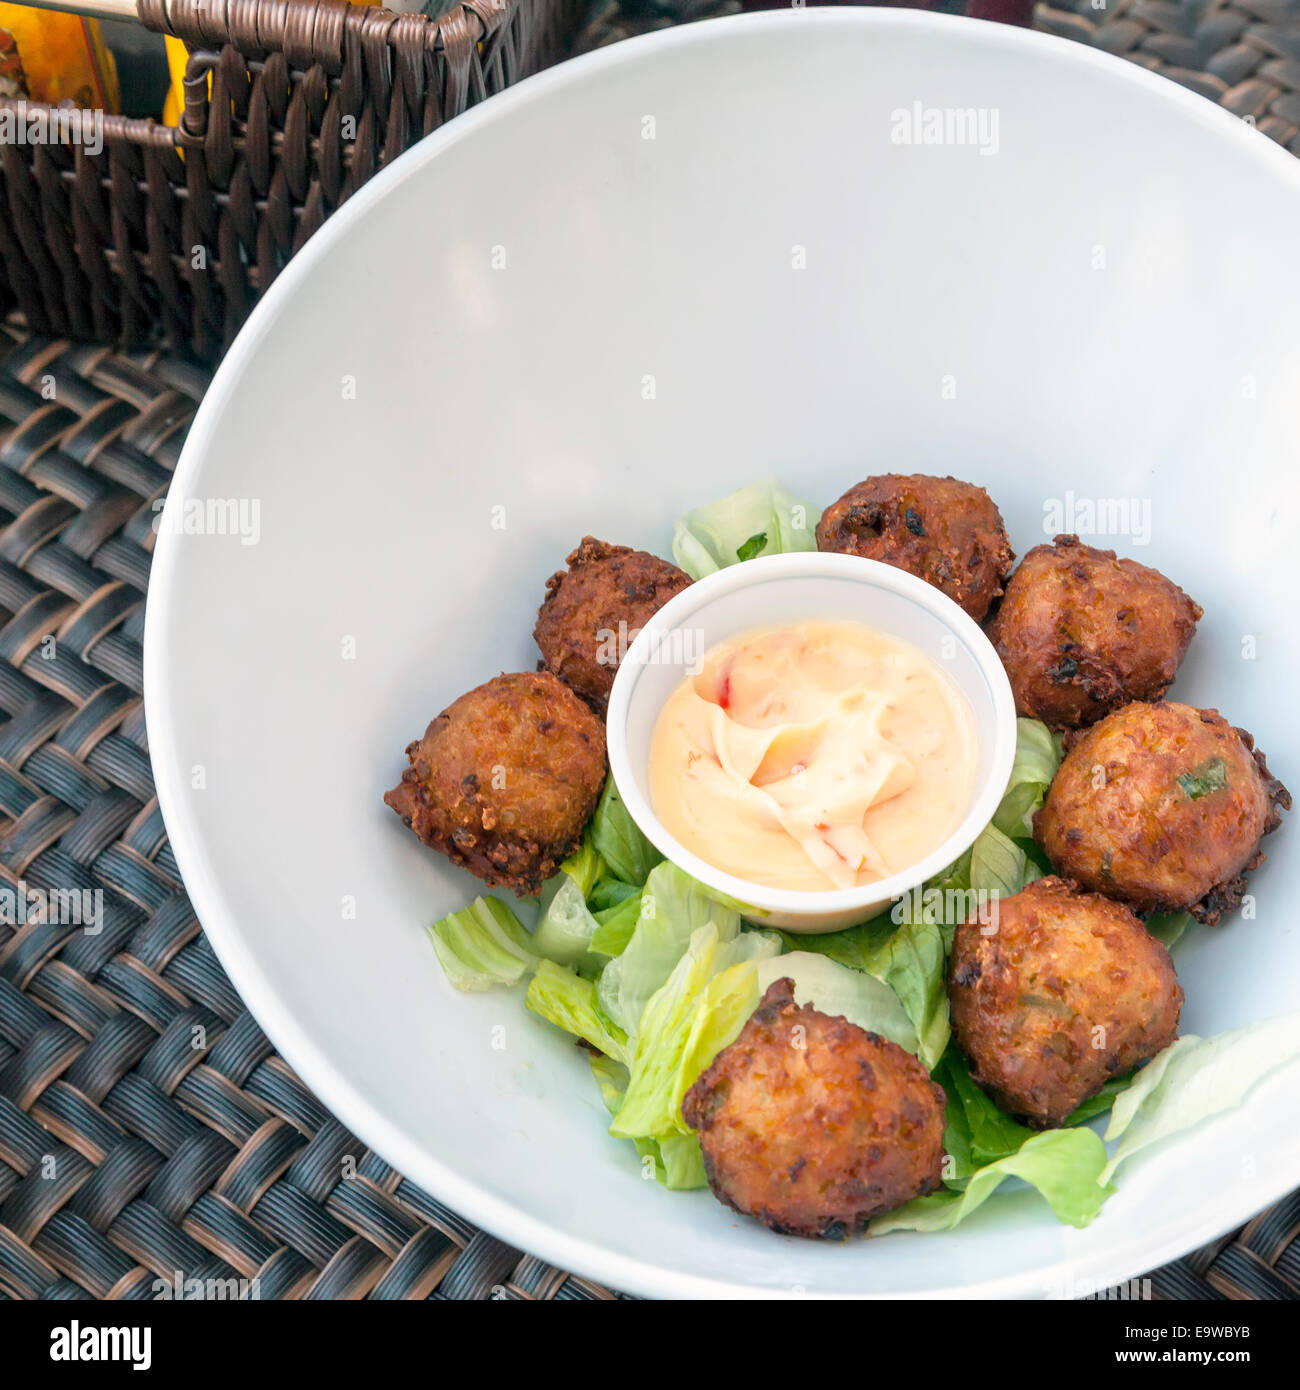 Spicy conch fritters on a bed of lettuce served with tangy chipotle sauce at the Sandbar Grille in Fort Lauderdale, - Stock Image